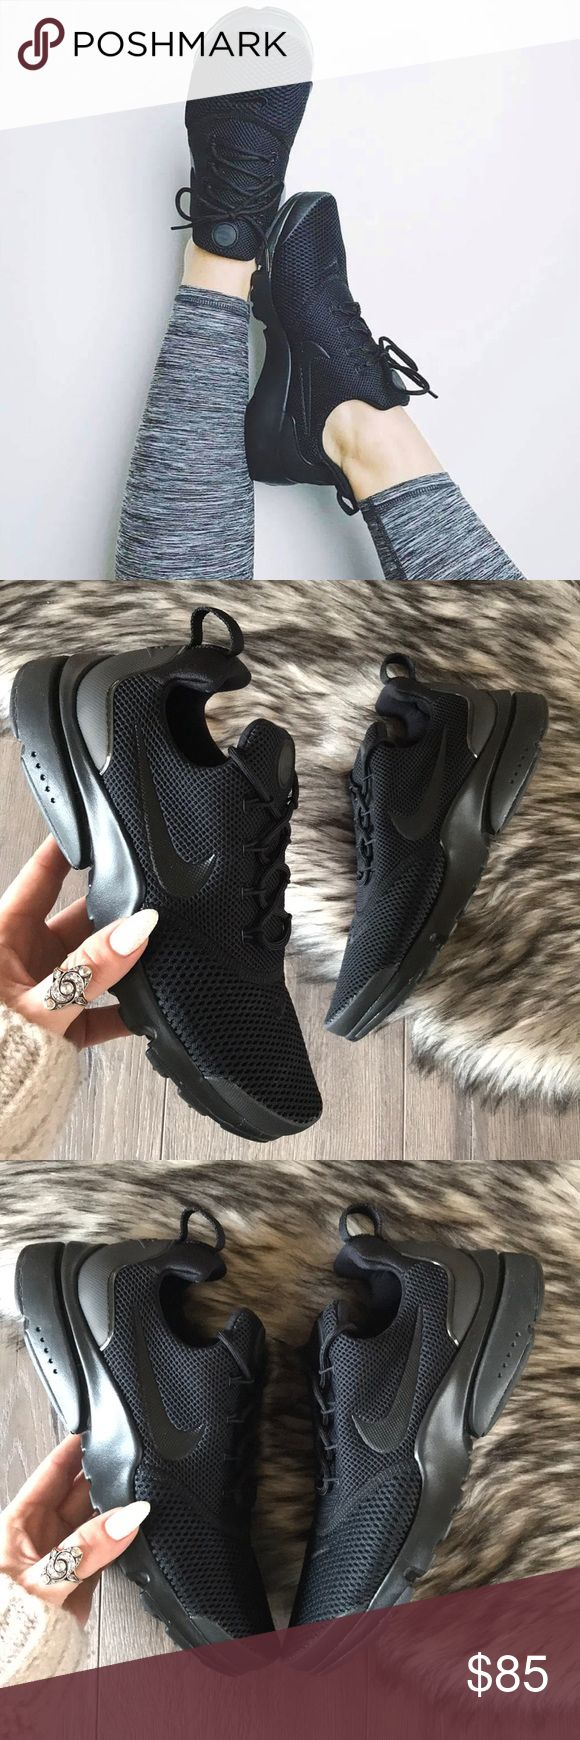 NWT🖤Nike Presto Triple Black Brand new with box,no lid!price is firm! A remake of the 2000 original, the Nike Presto Fly Women's Shoe delivers a T-shirt-like feel for your foot, with a breathable, incredibly flexible upper. Stretch mesh upper with TPU in toe and heel for breathable support Flywire cables integrate with laces for dynamic lockdown IU midsole doubles as an outsole for lightweight cushioning Rubber pods at heel and toe for durable traction Heel pull tab for easy on and off size…